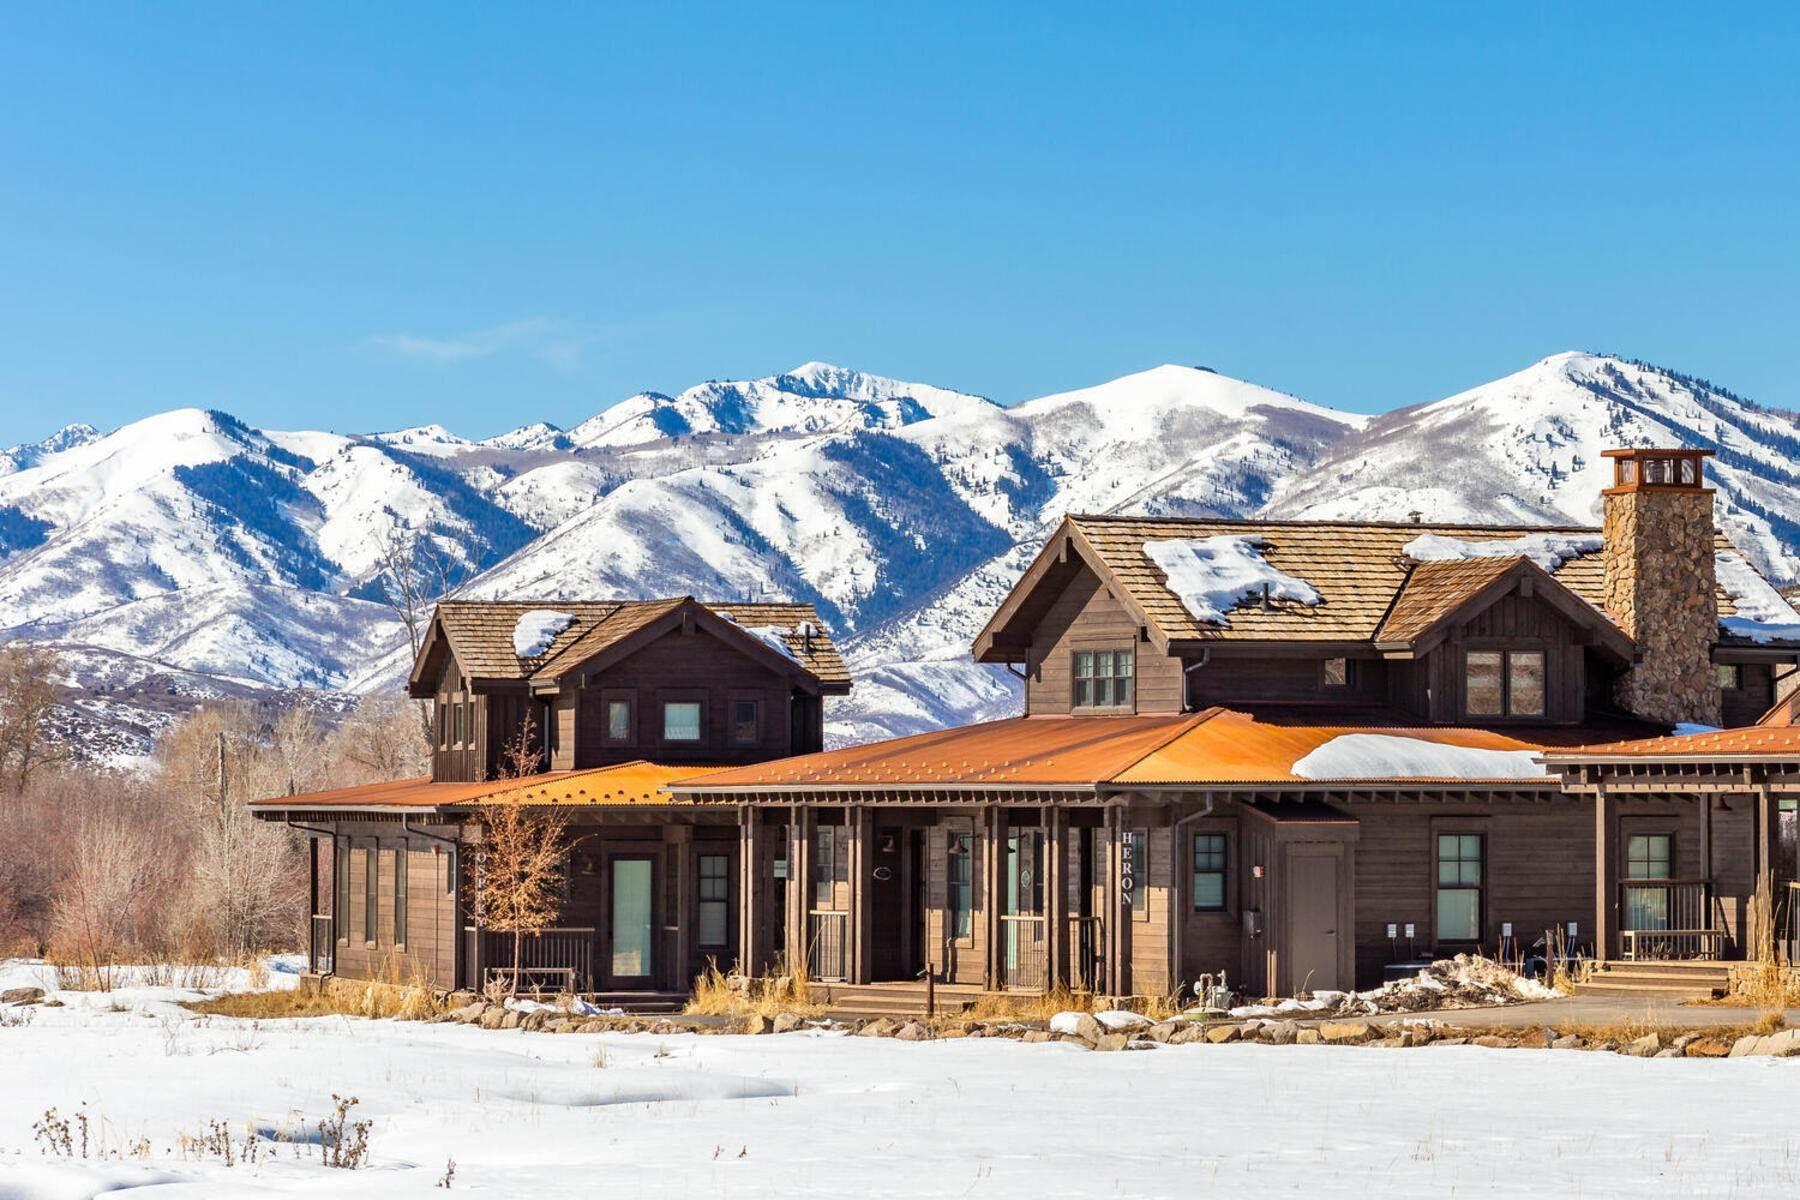 9. fractional ownership prop for Sale at 1/8 Fractional Ownership Opportunity In Brand New Kingfisher Cabin 7615 E Stardust Court #319E, 5.13 Heber City, Utah 84032 United States